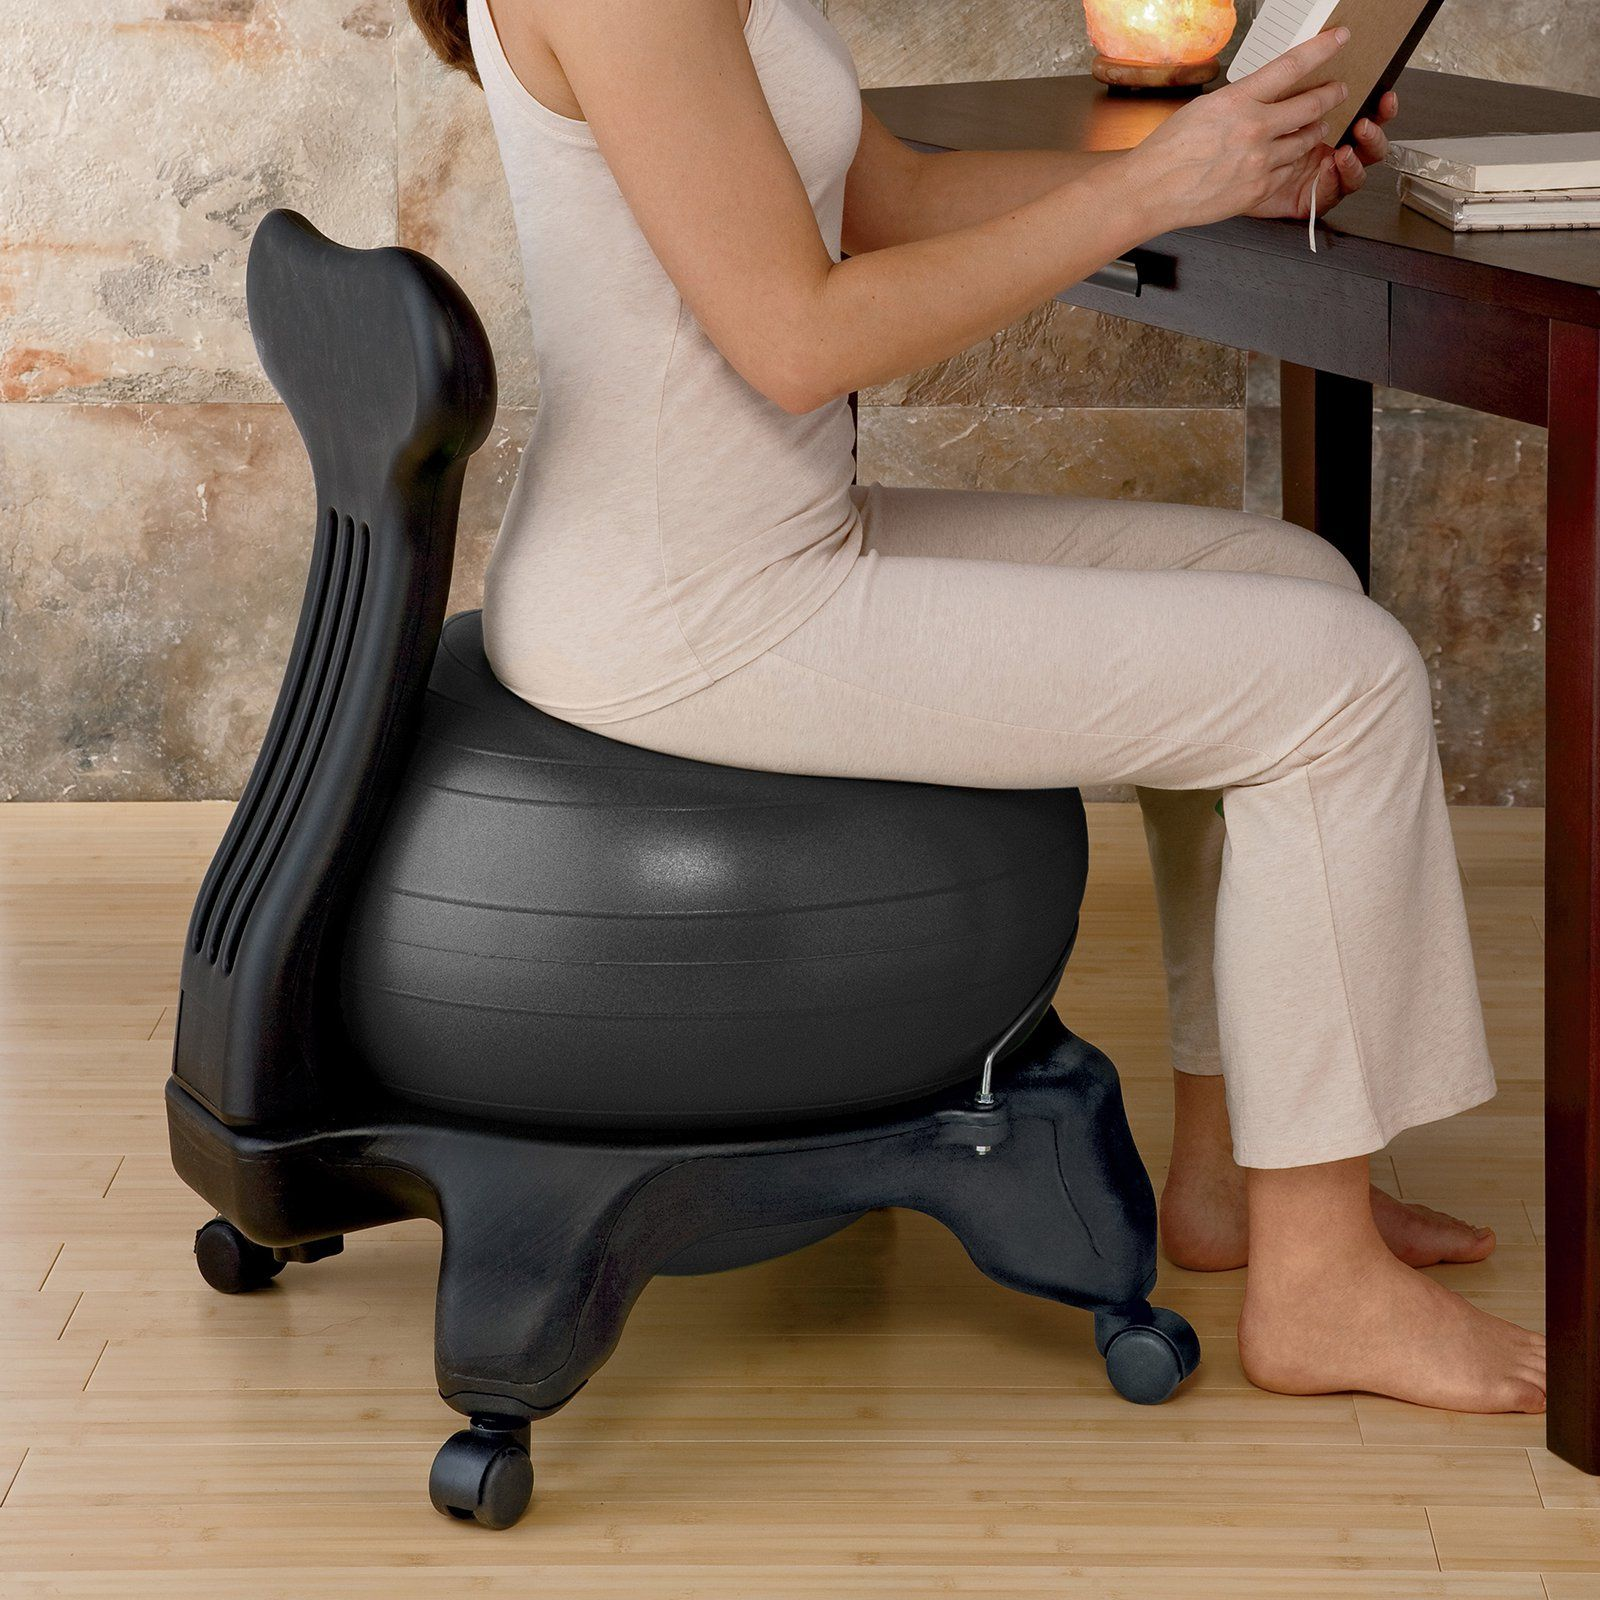 Pilates Ball Chair Gaiam Balance Ball Chair With Pump 610 6002rtl Products In